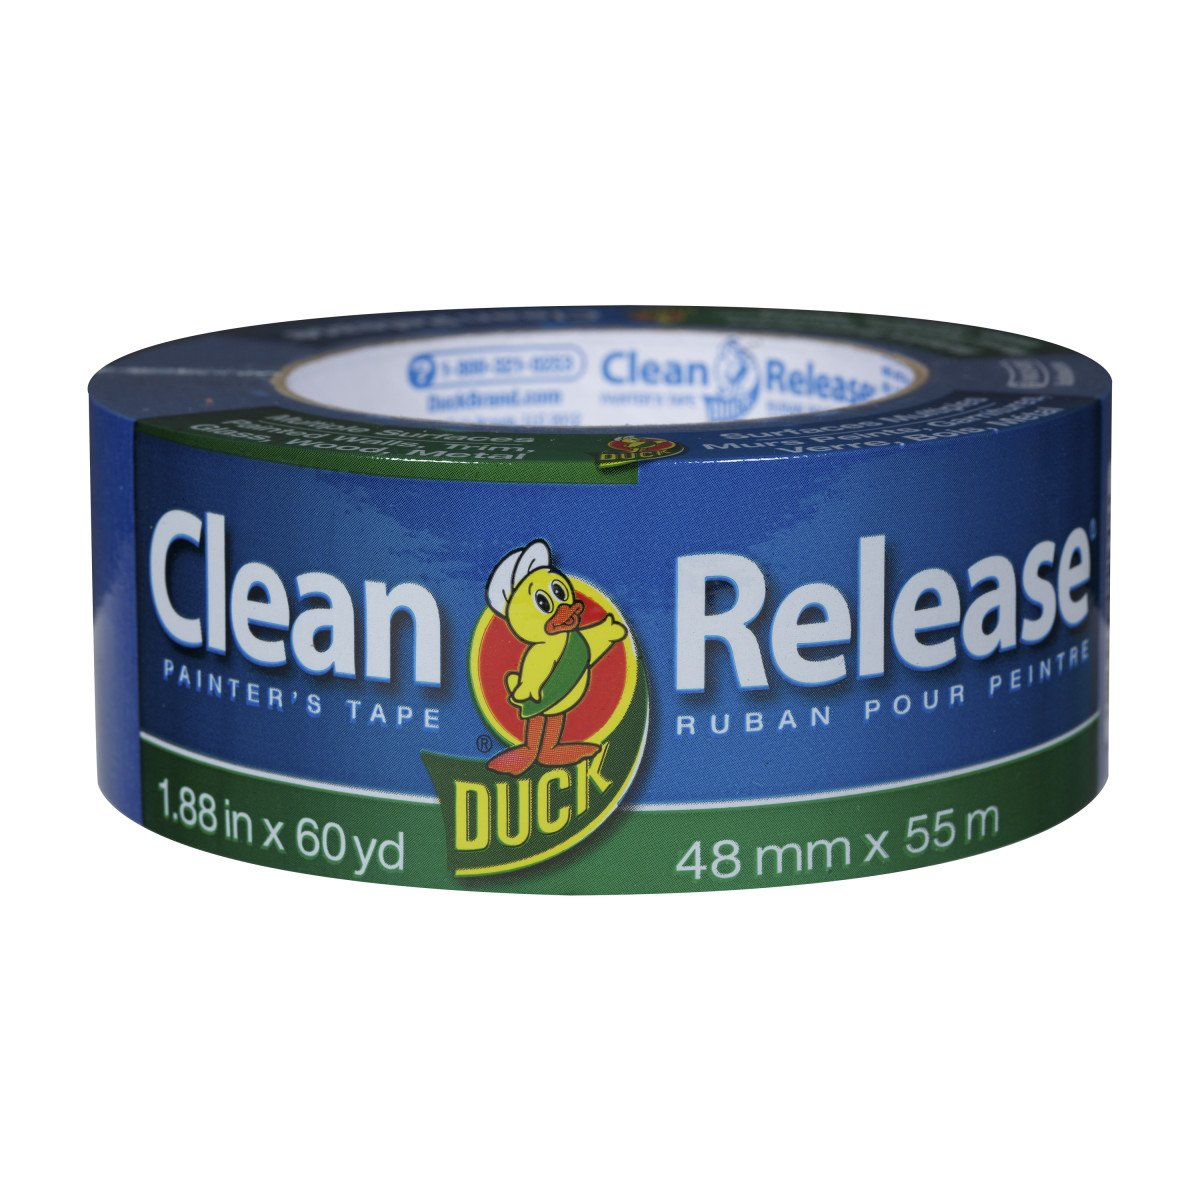 Duck Clean Release Blue Painter's Tape 2-Inch (1.88-Inch x 60-Yard), 12 Rolls, 720 Total Yards, 284372 by Duck (Image #3)